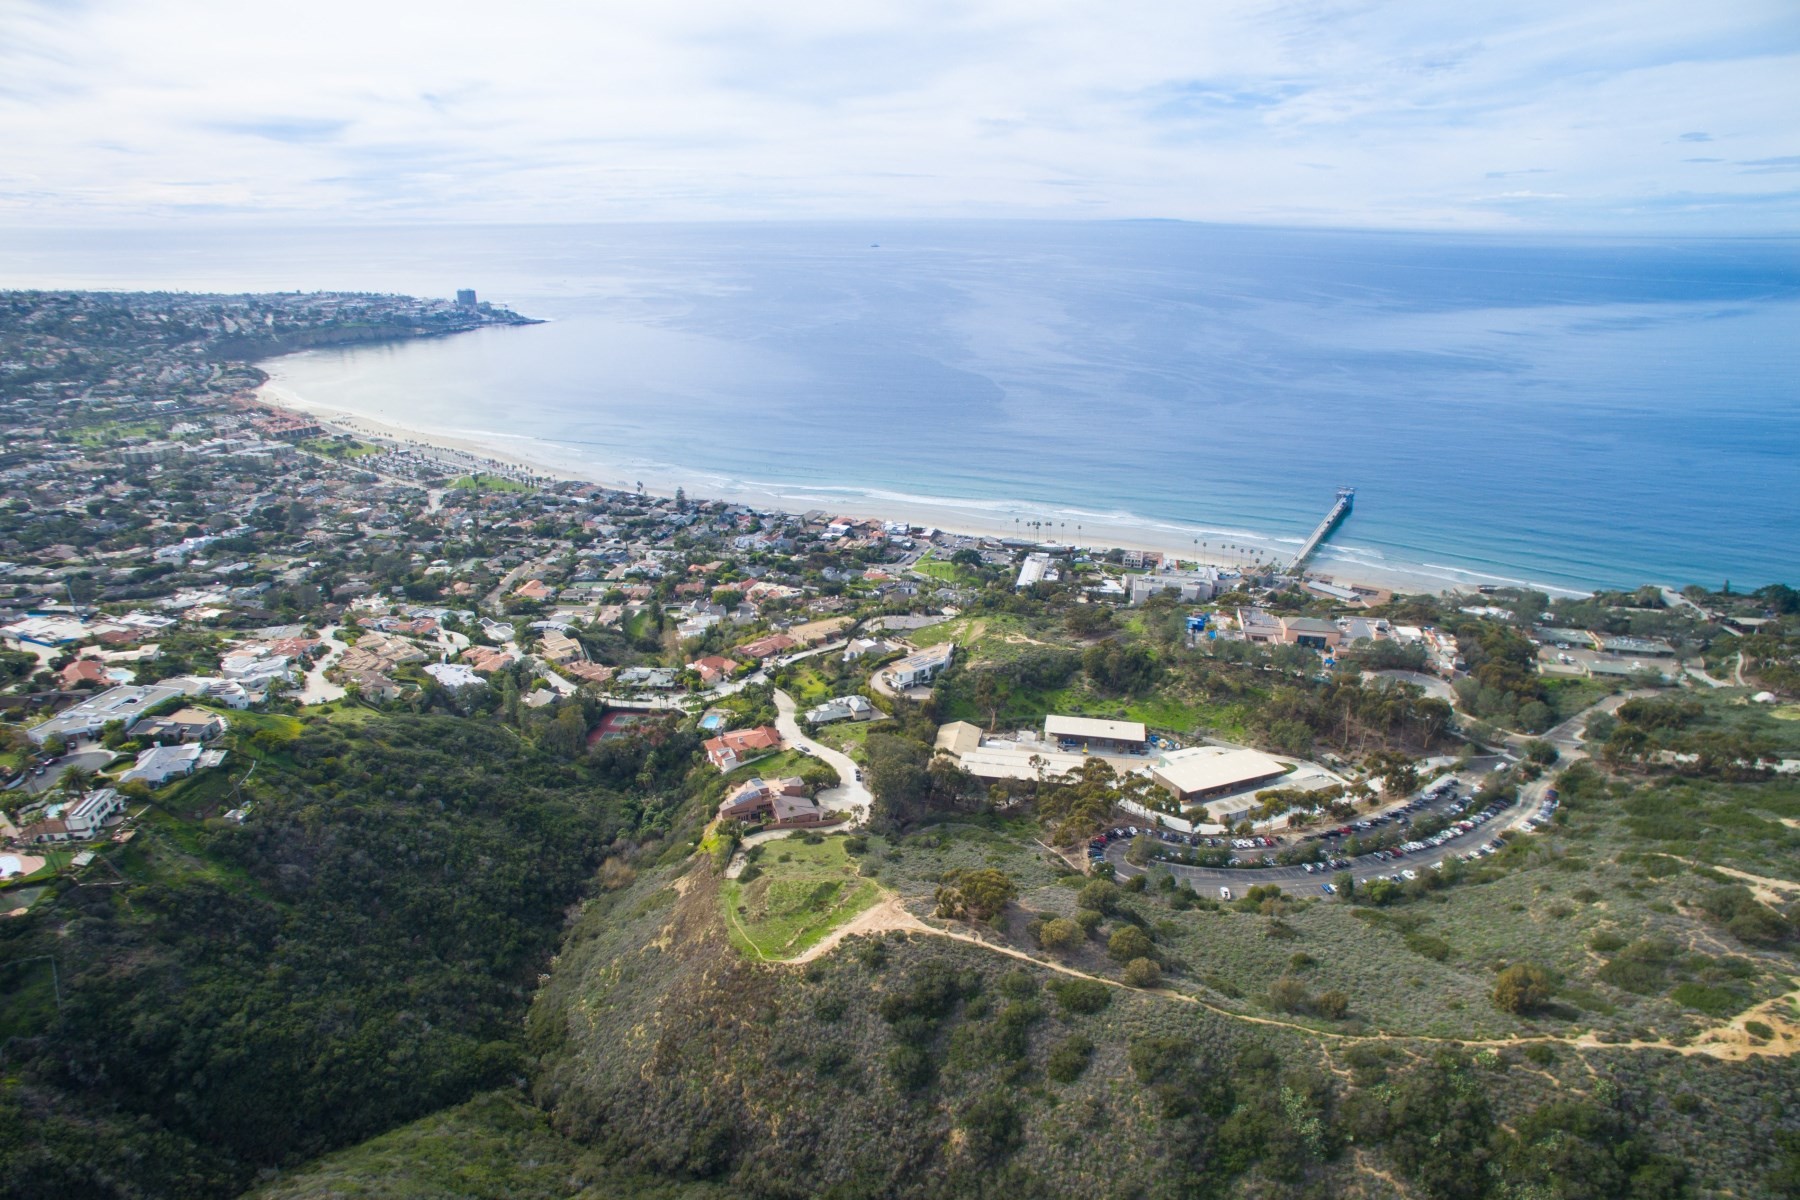 Land for Sale at Build Your Paradise 000 Ruette Nicole La Jolla, California, 92037 United States